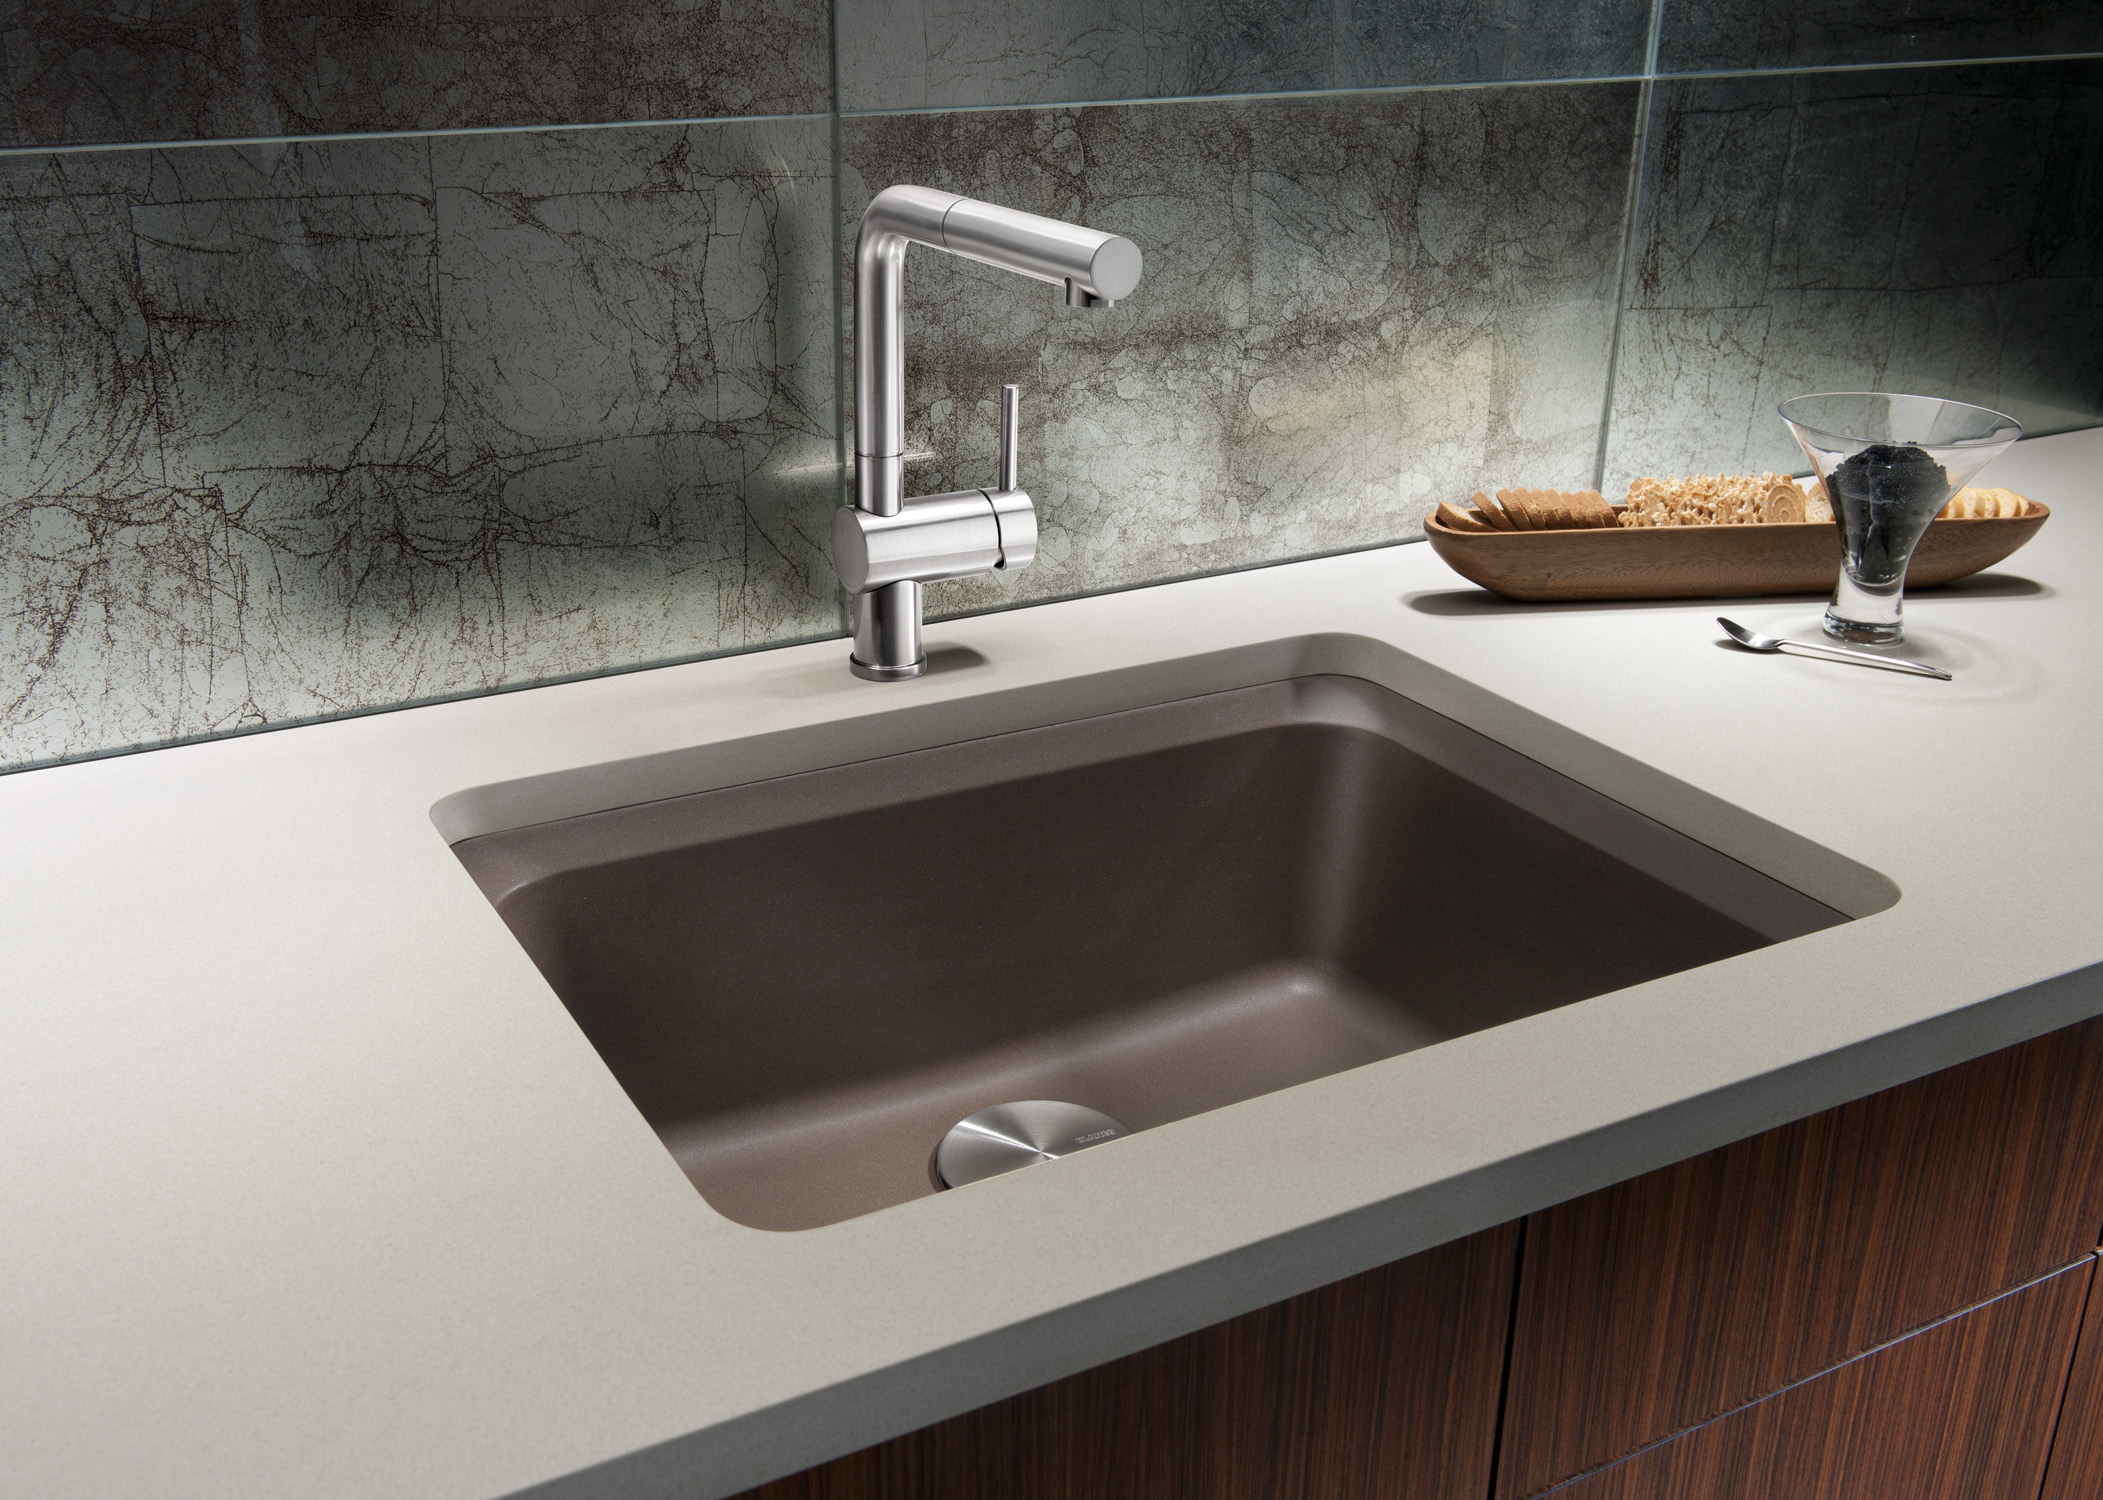 The new BLANCO SILGRANIT II VISION™ designer kitchen sink offers